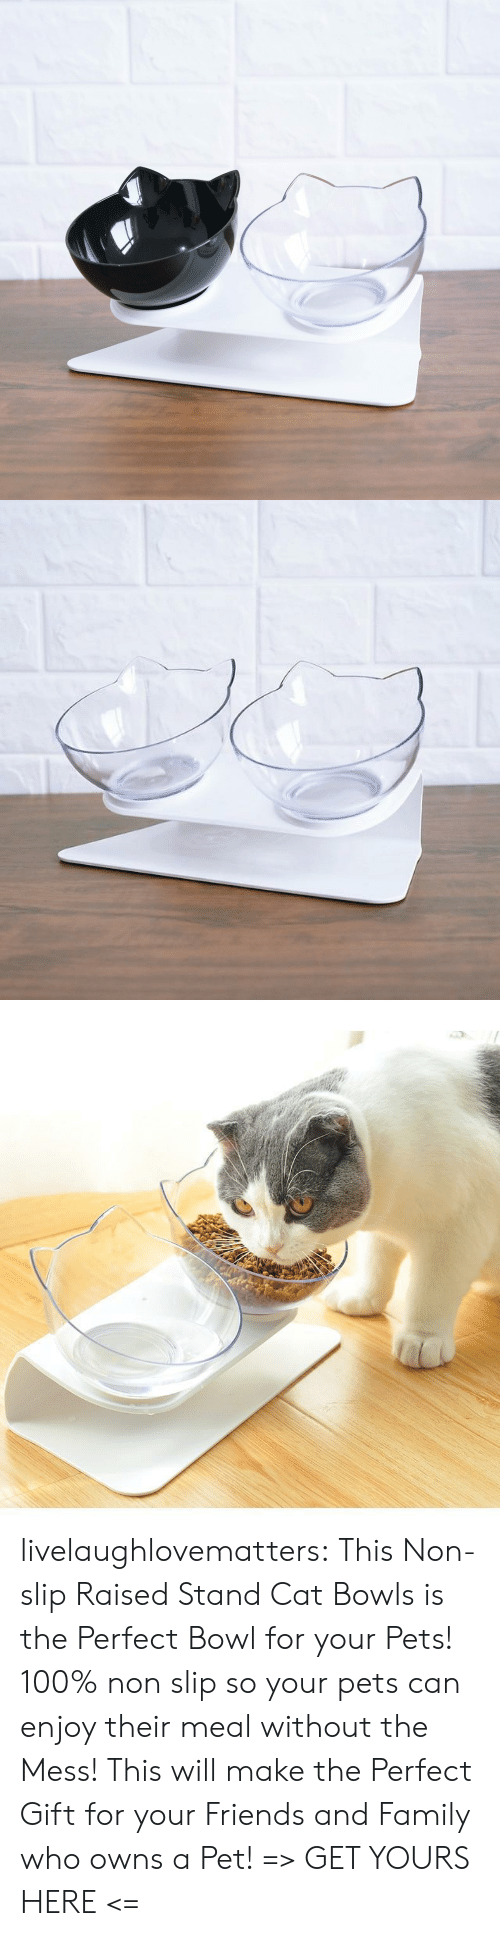 Raised: livelaughlovematters: This Non-slip Raised Stand Cat Bowls is the Perfect Bowl for your Pets! 100% non slip so your pets can enjoy their meal without the Mess! This will make the Perfect Gift for your Friends and Family who owns a Pet! => GET YOURS HERE <=